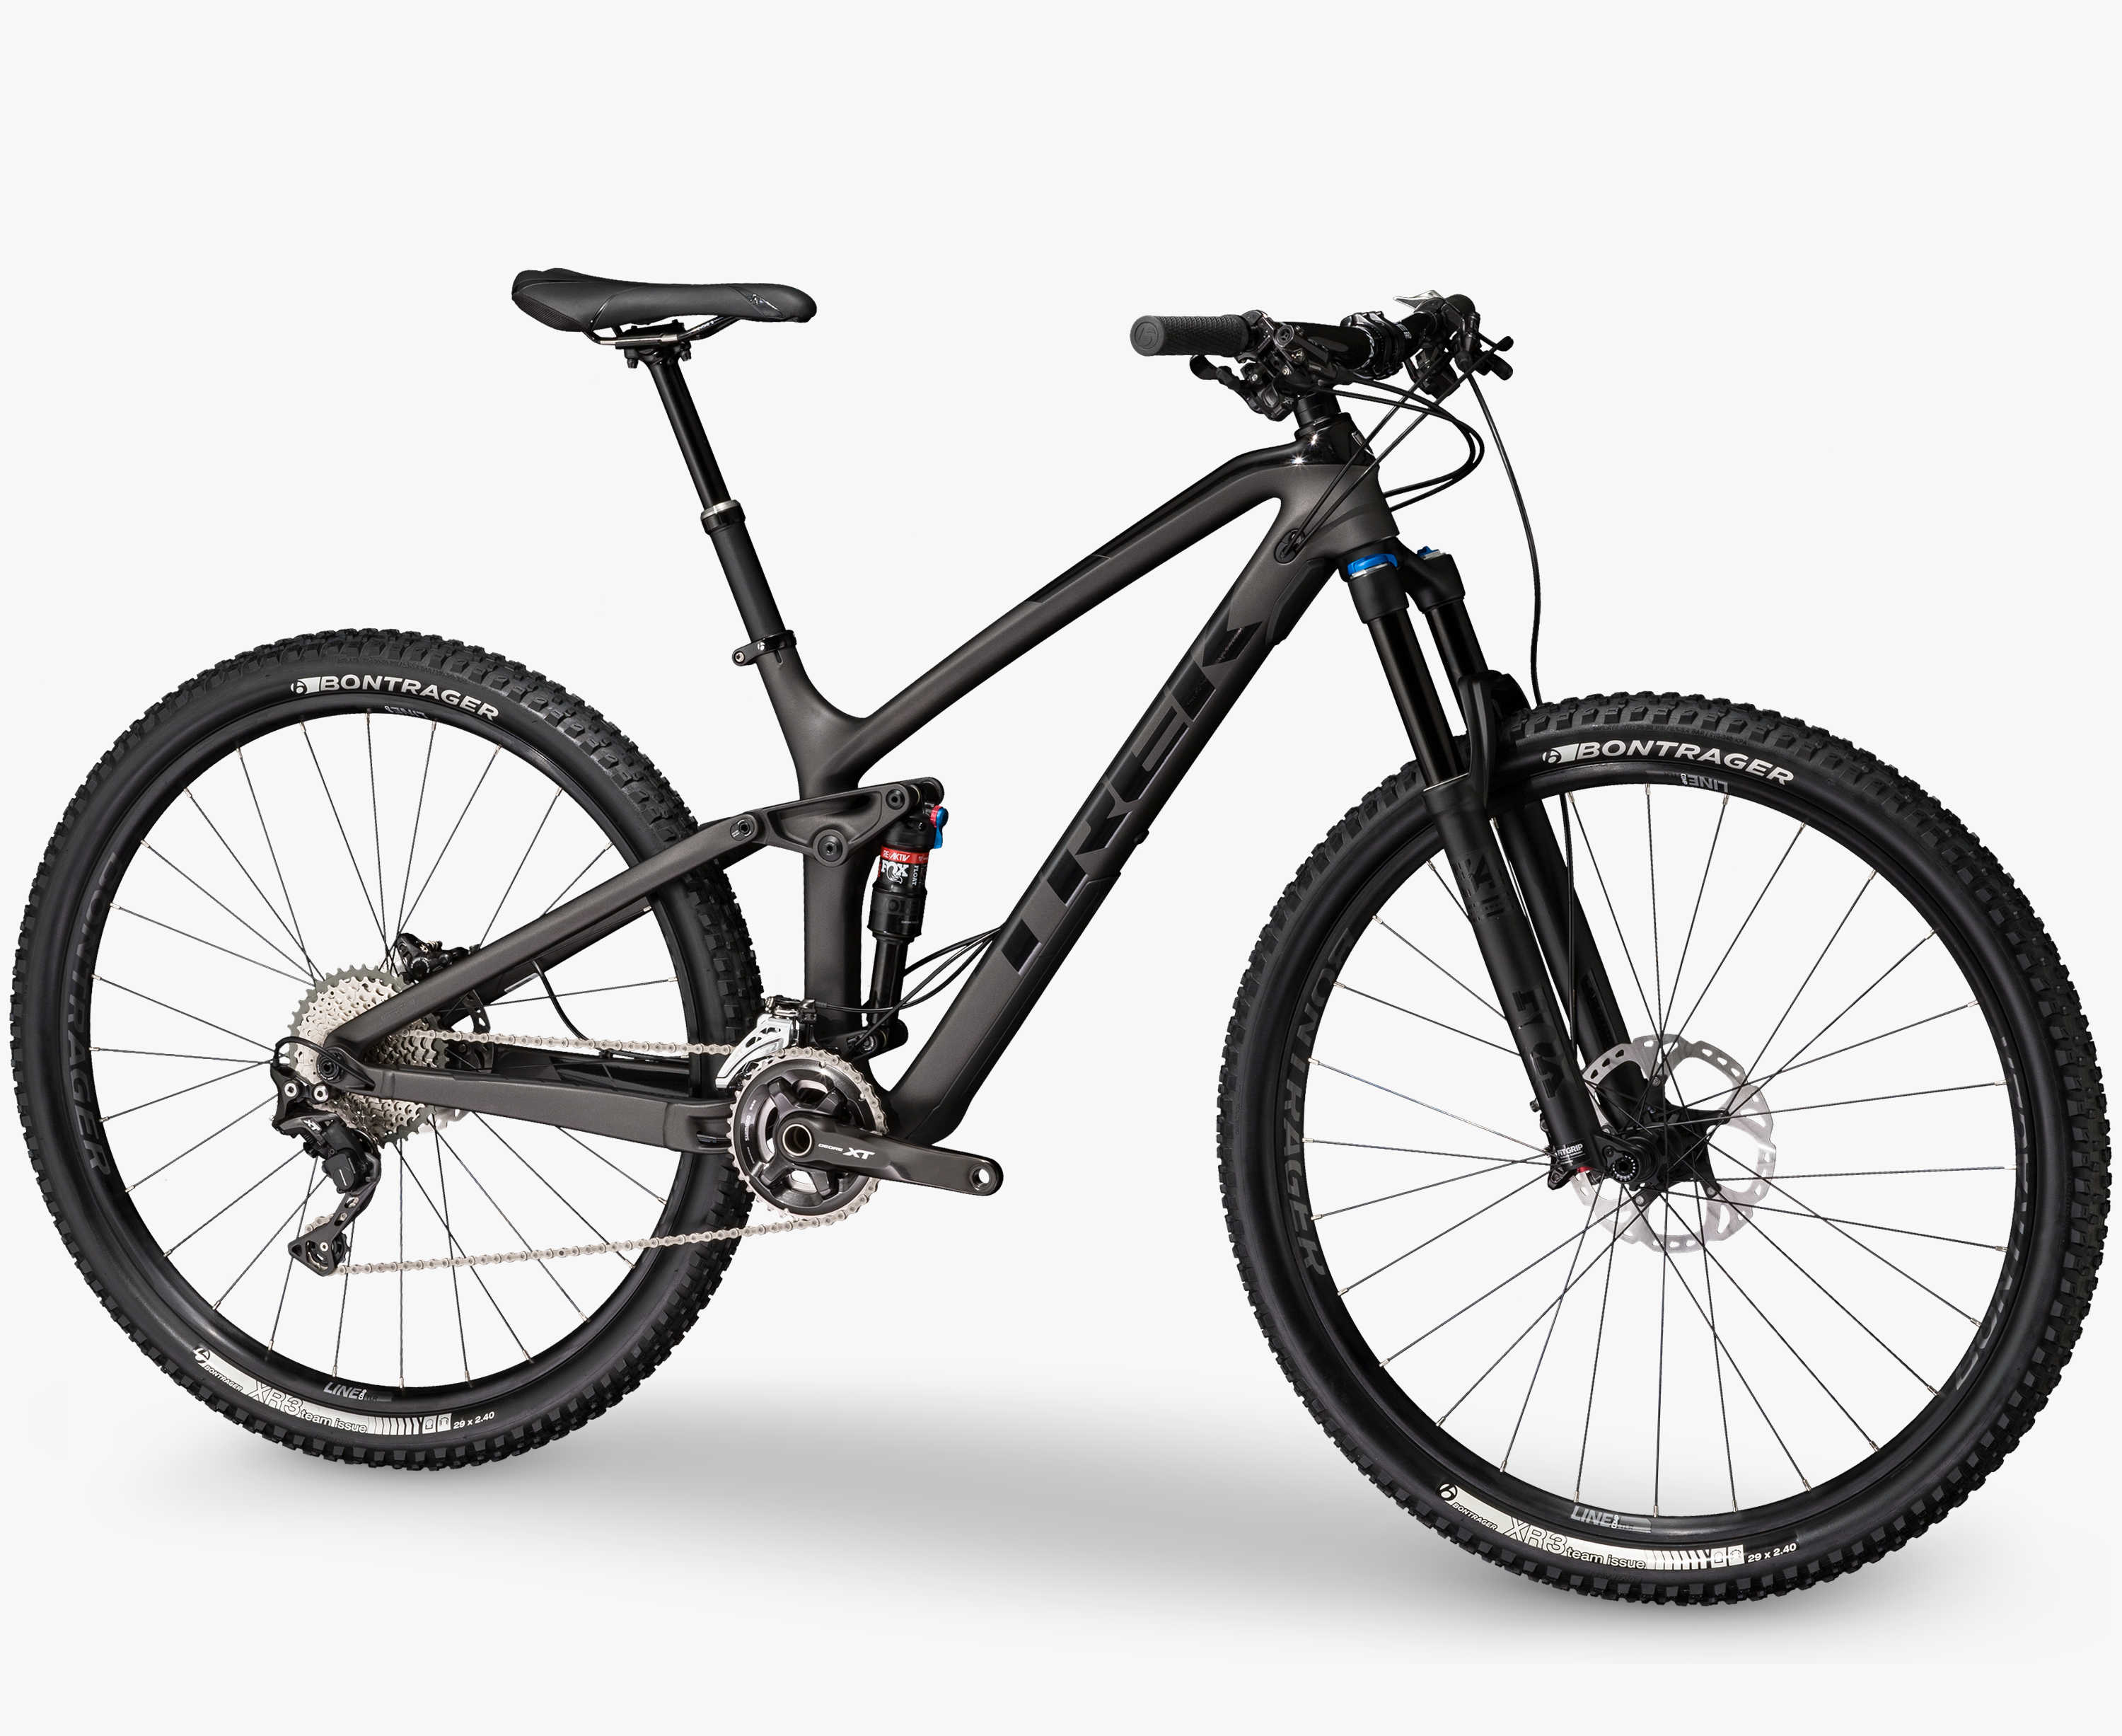 f891292ea54 All-new 2017 Trek Fuel EX 29 & Remedy Available Now!